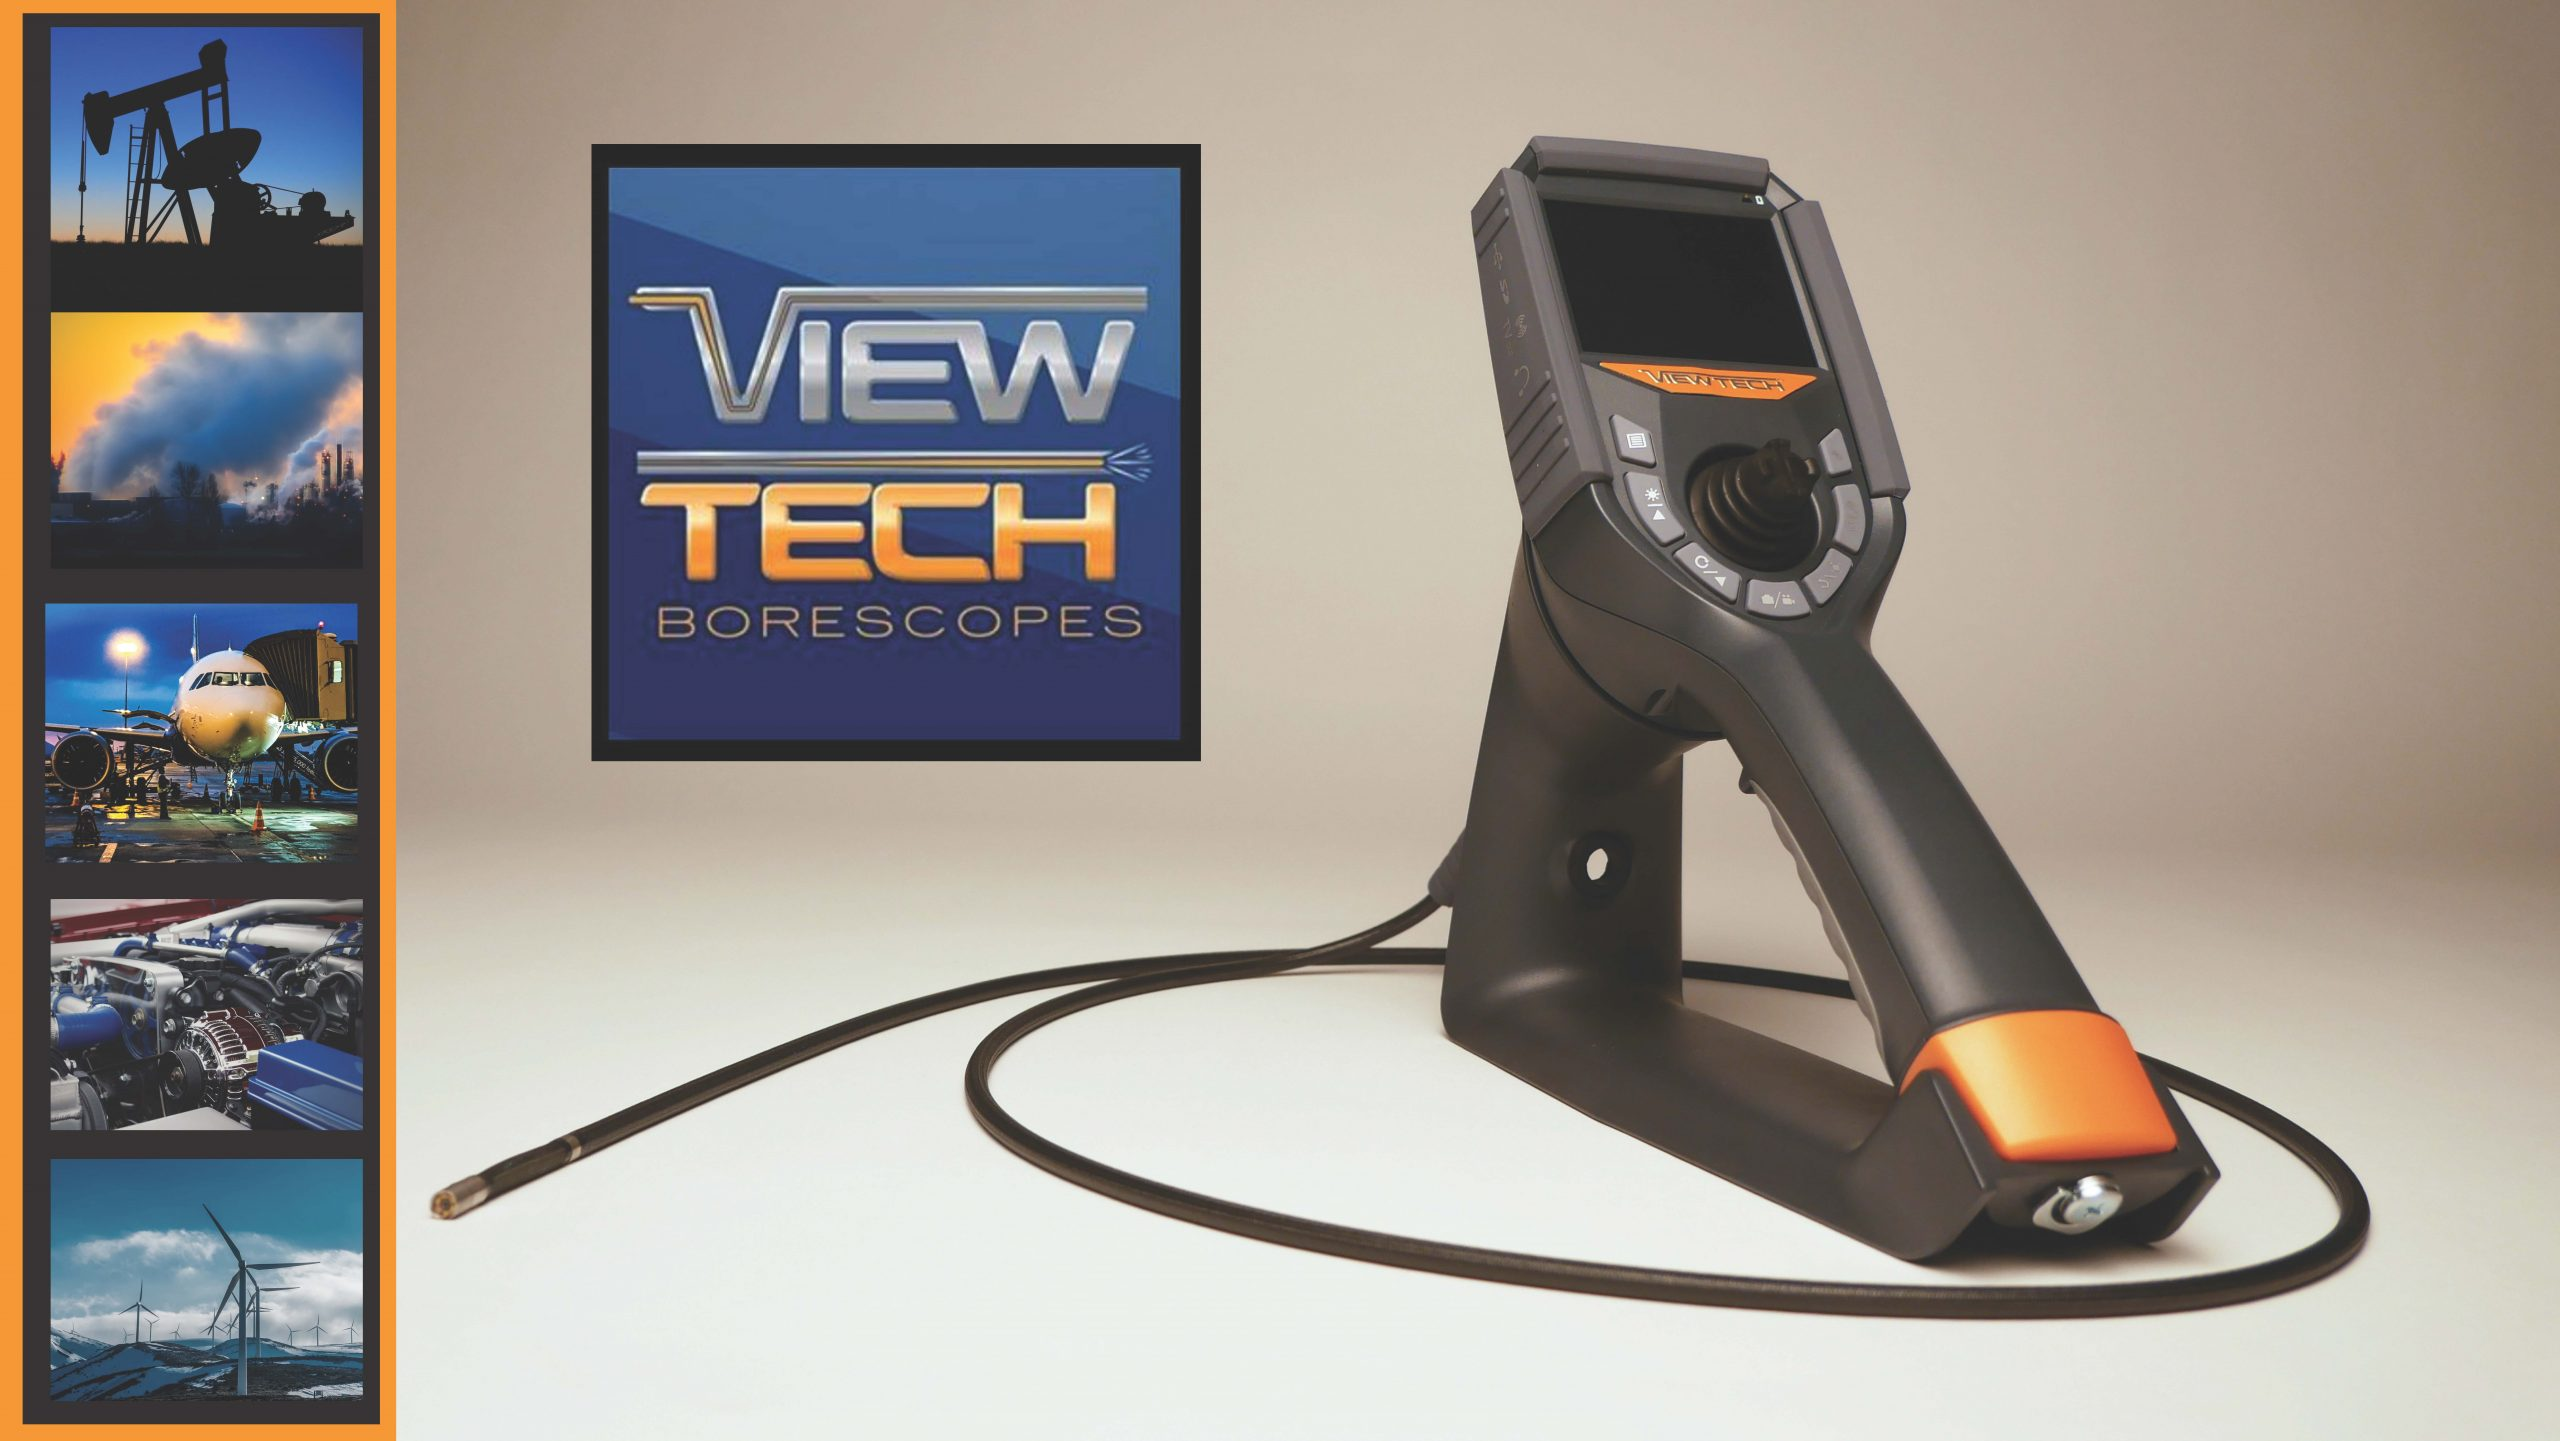 ViewTech Borescopes